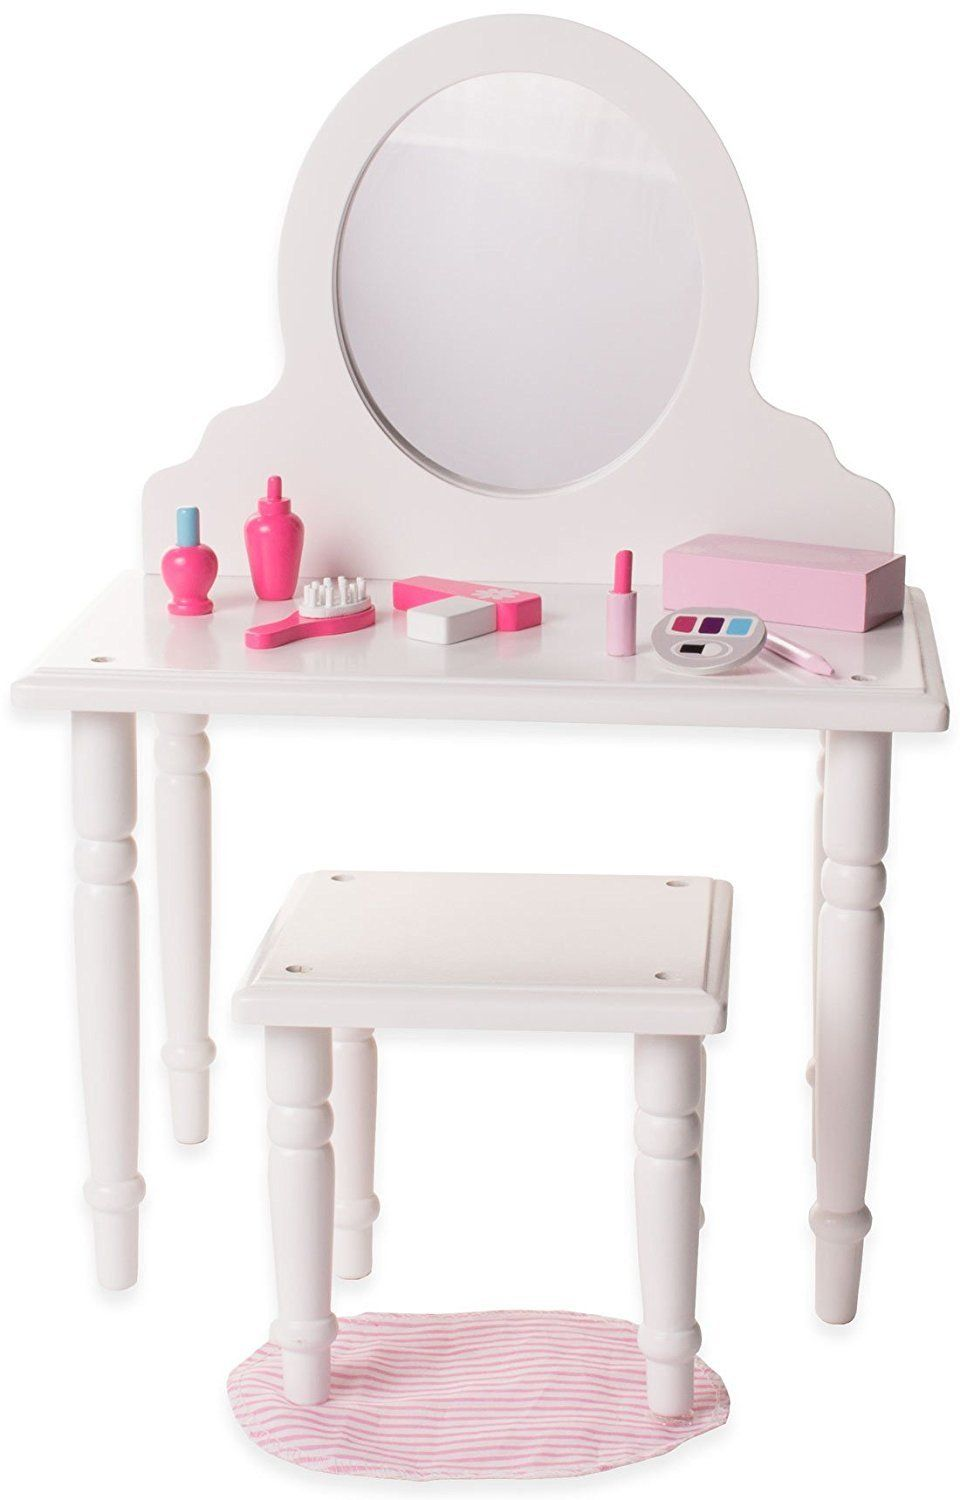 Eimmie Vanity And Stool Set With Accessories Doll Furniture